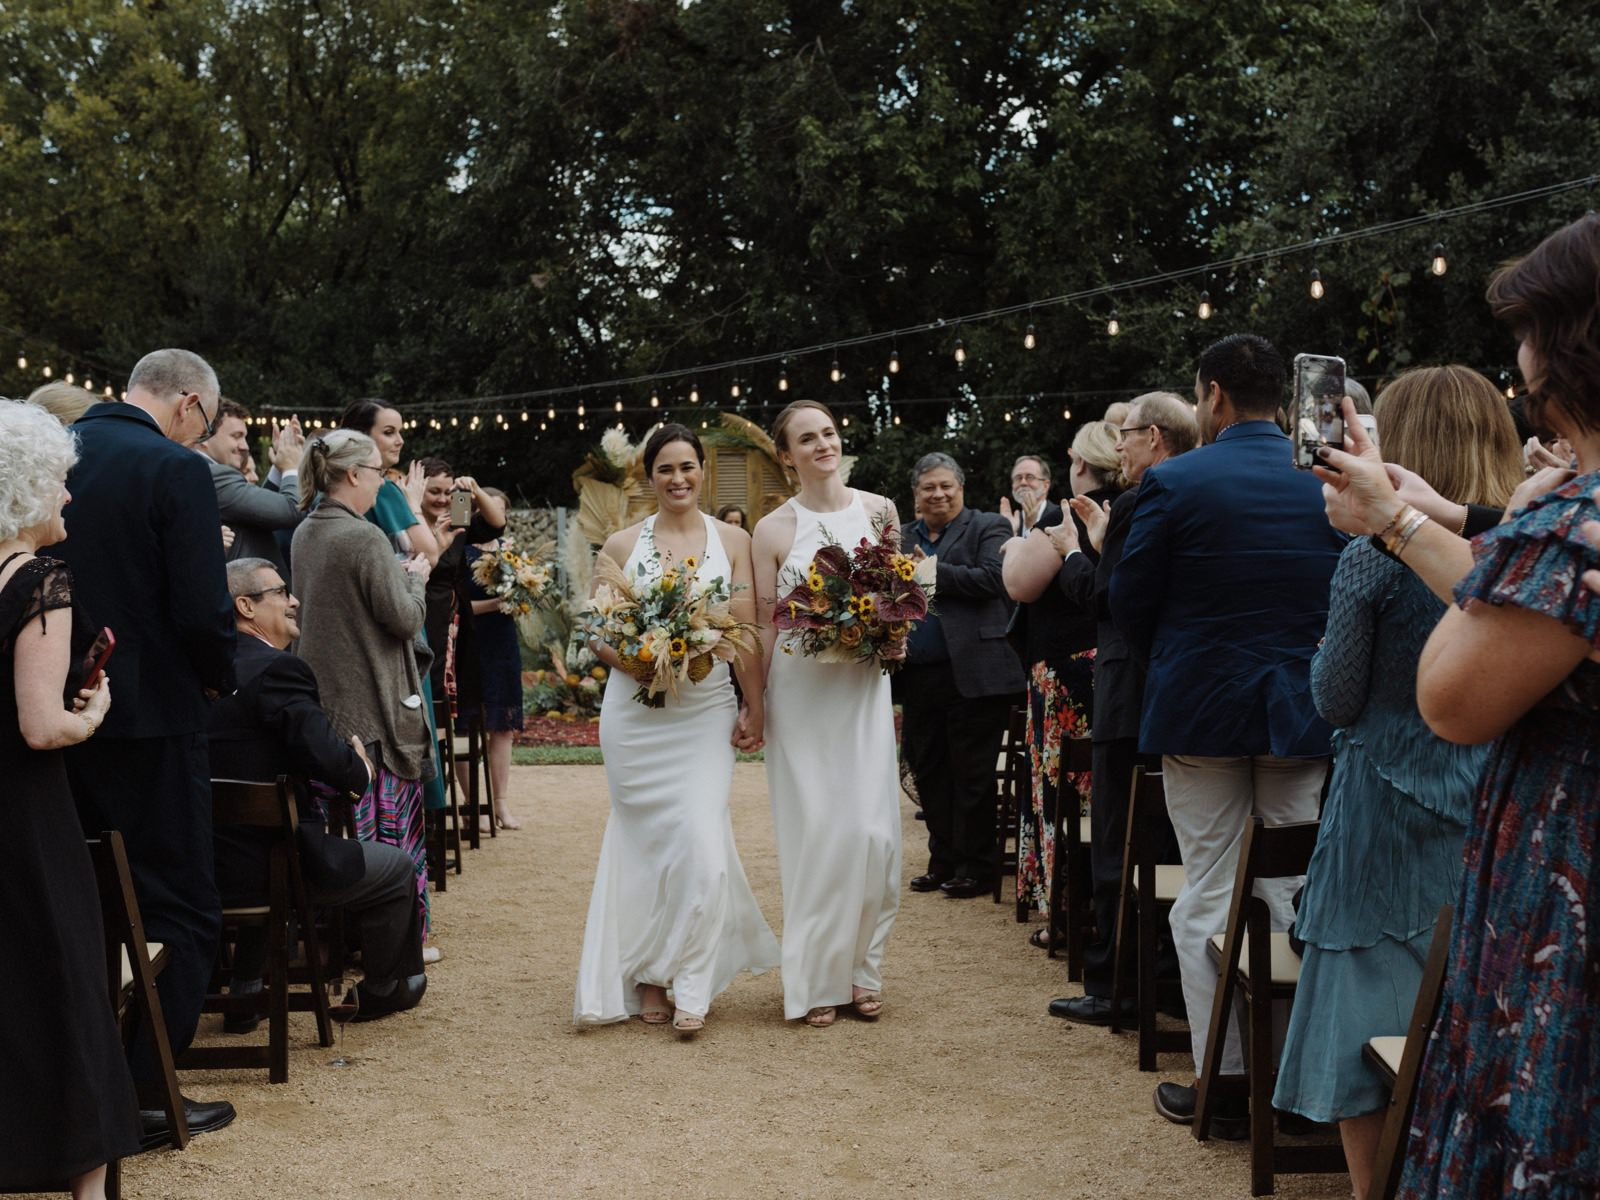 Wedding recessional in Springdale Station's outdoor courtyard with two brides holding complimentary yet unique textured bouquets